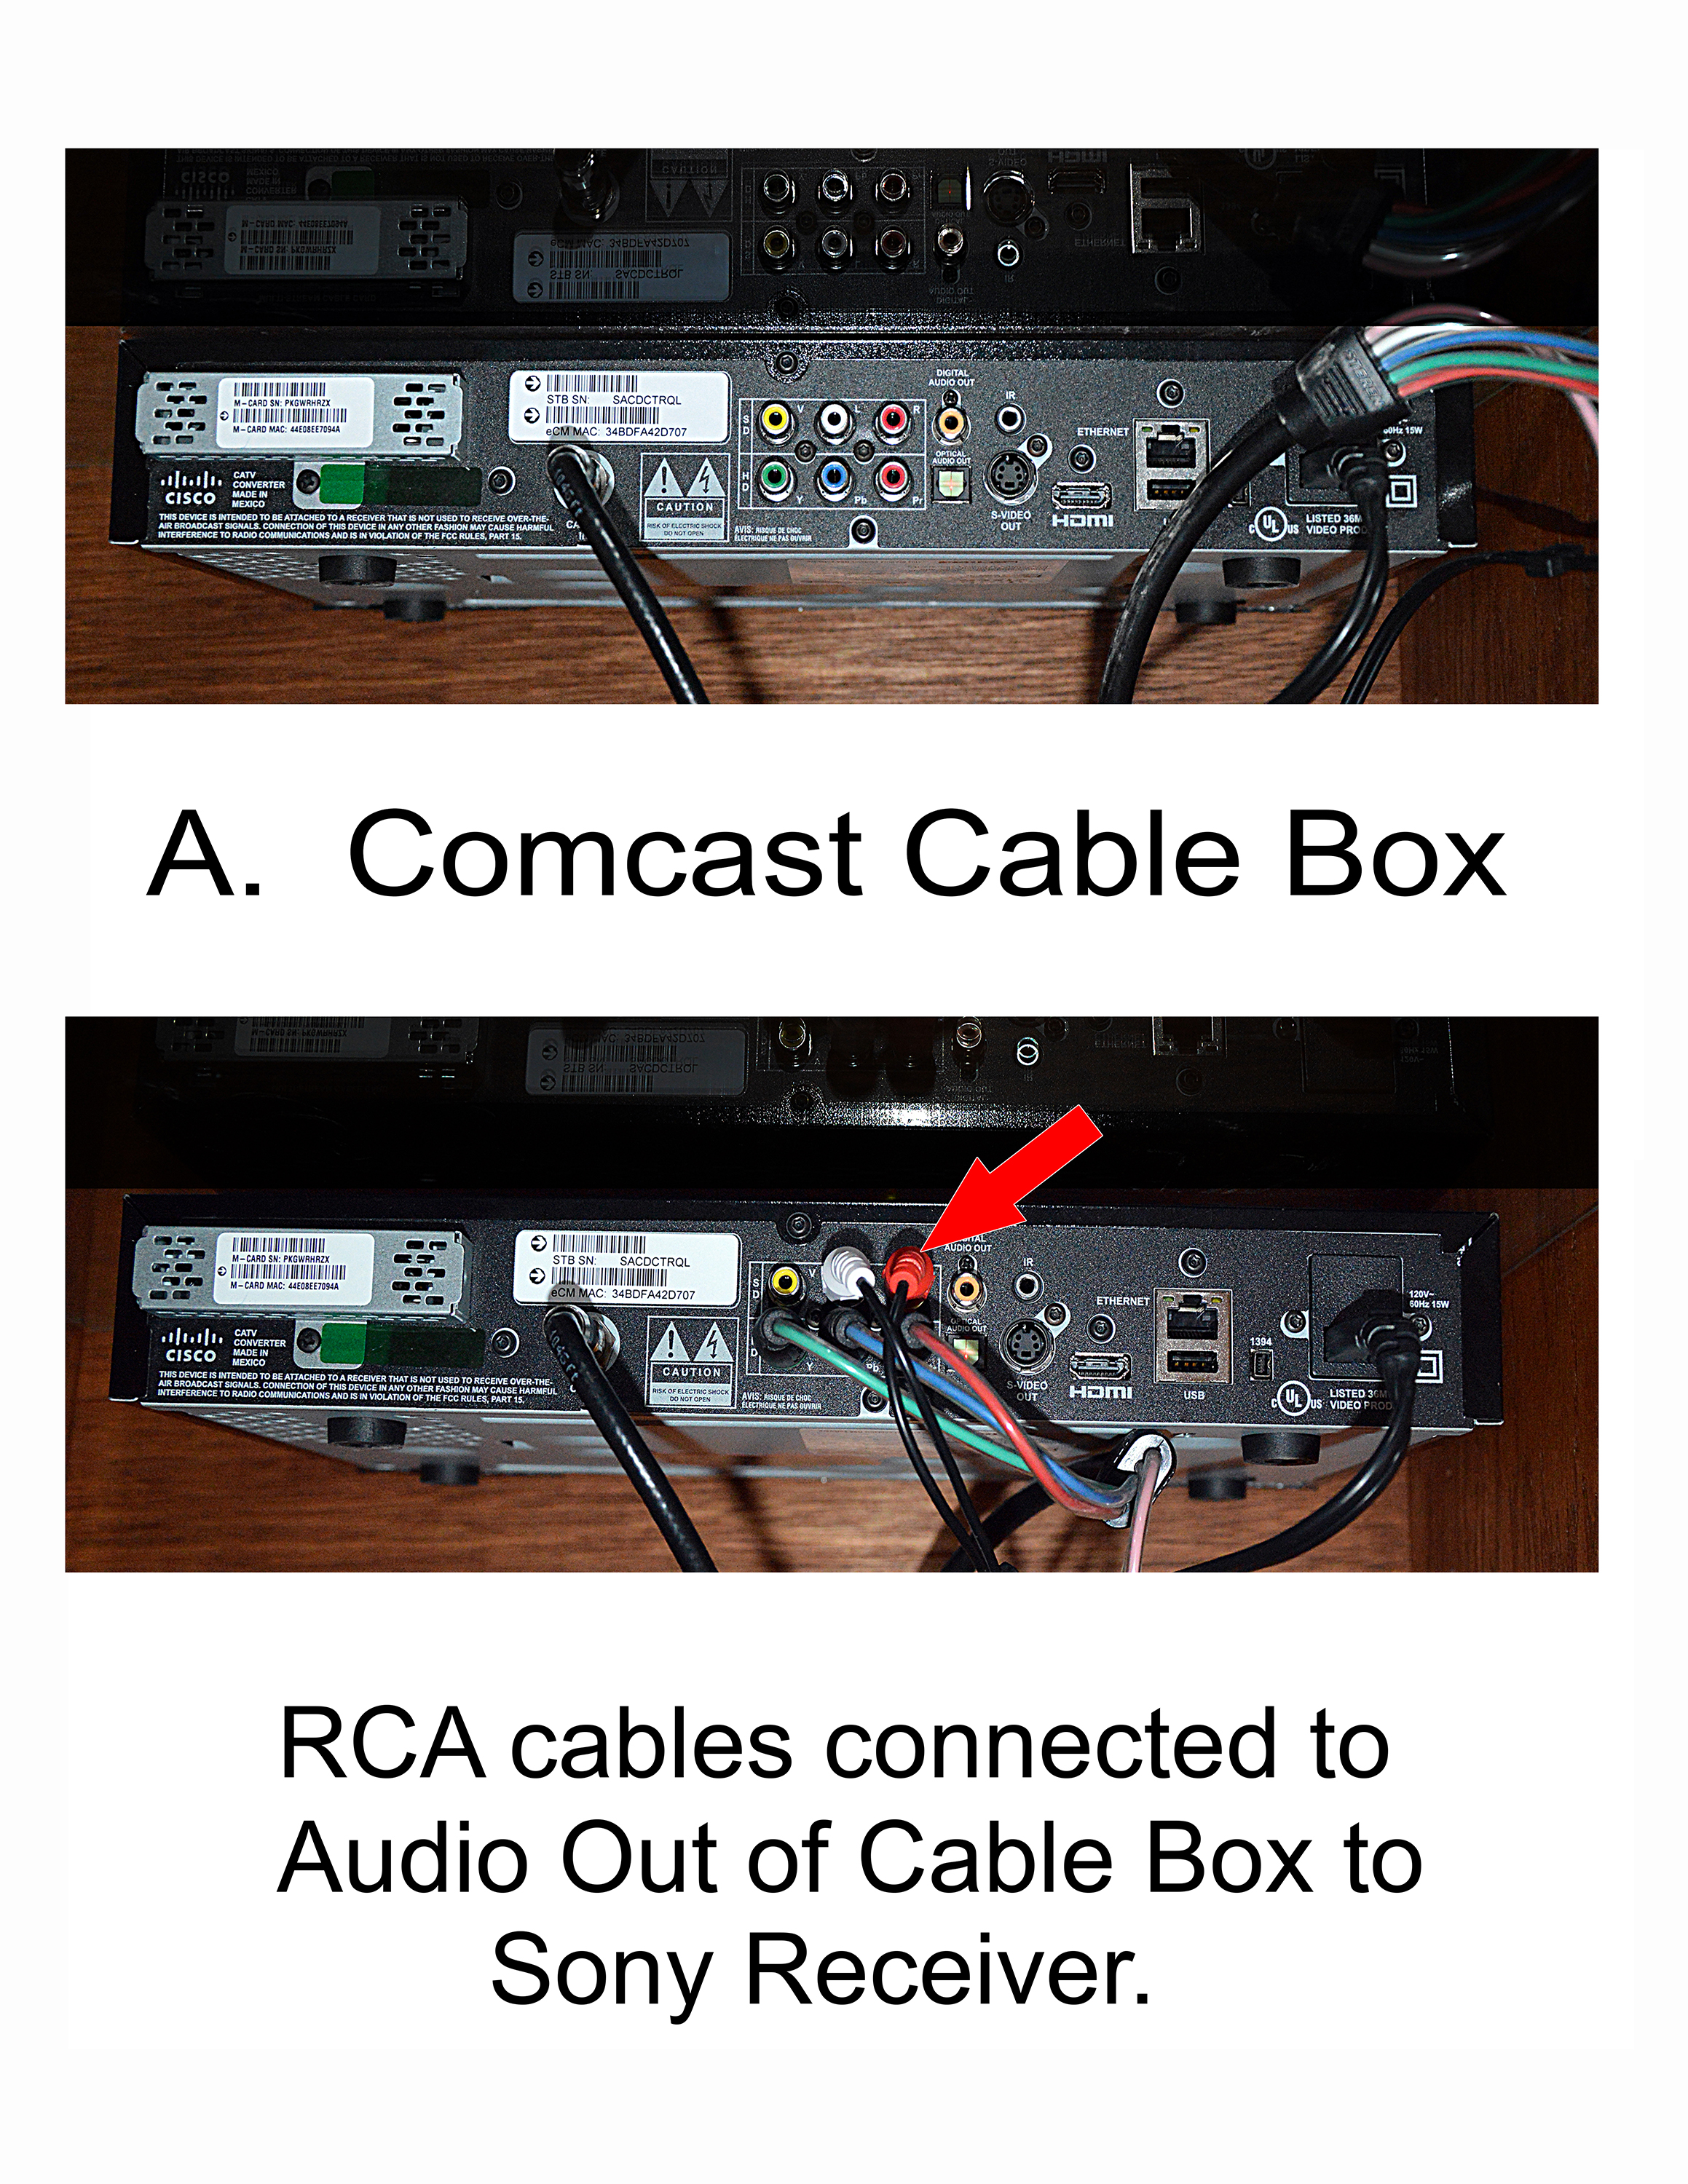 1. Comcast Cable Box Composite final.jpg